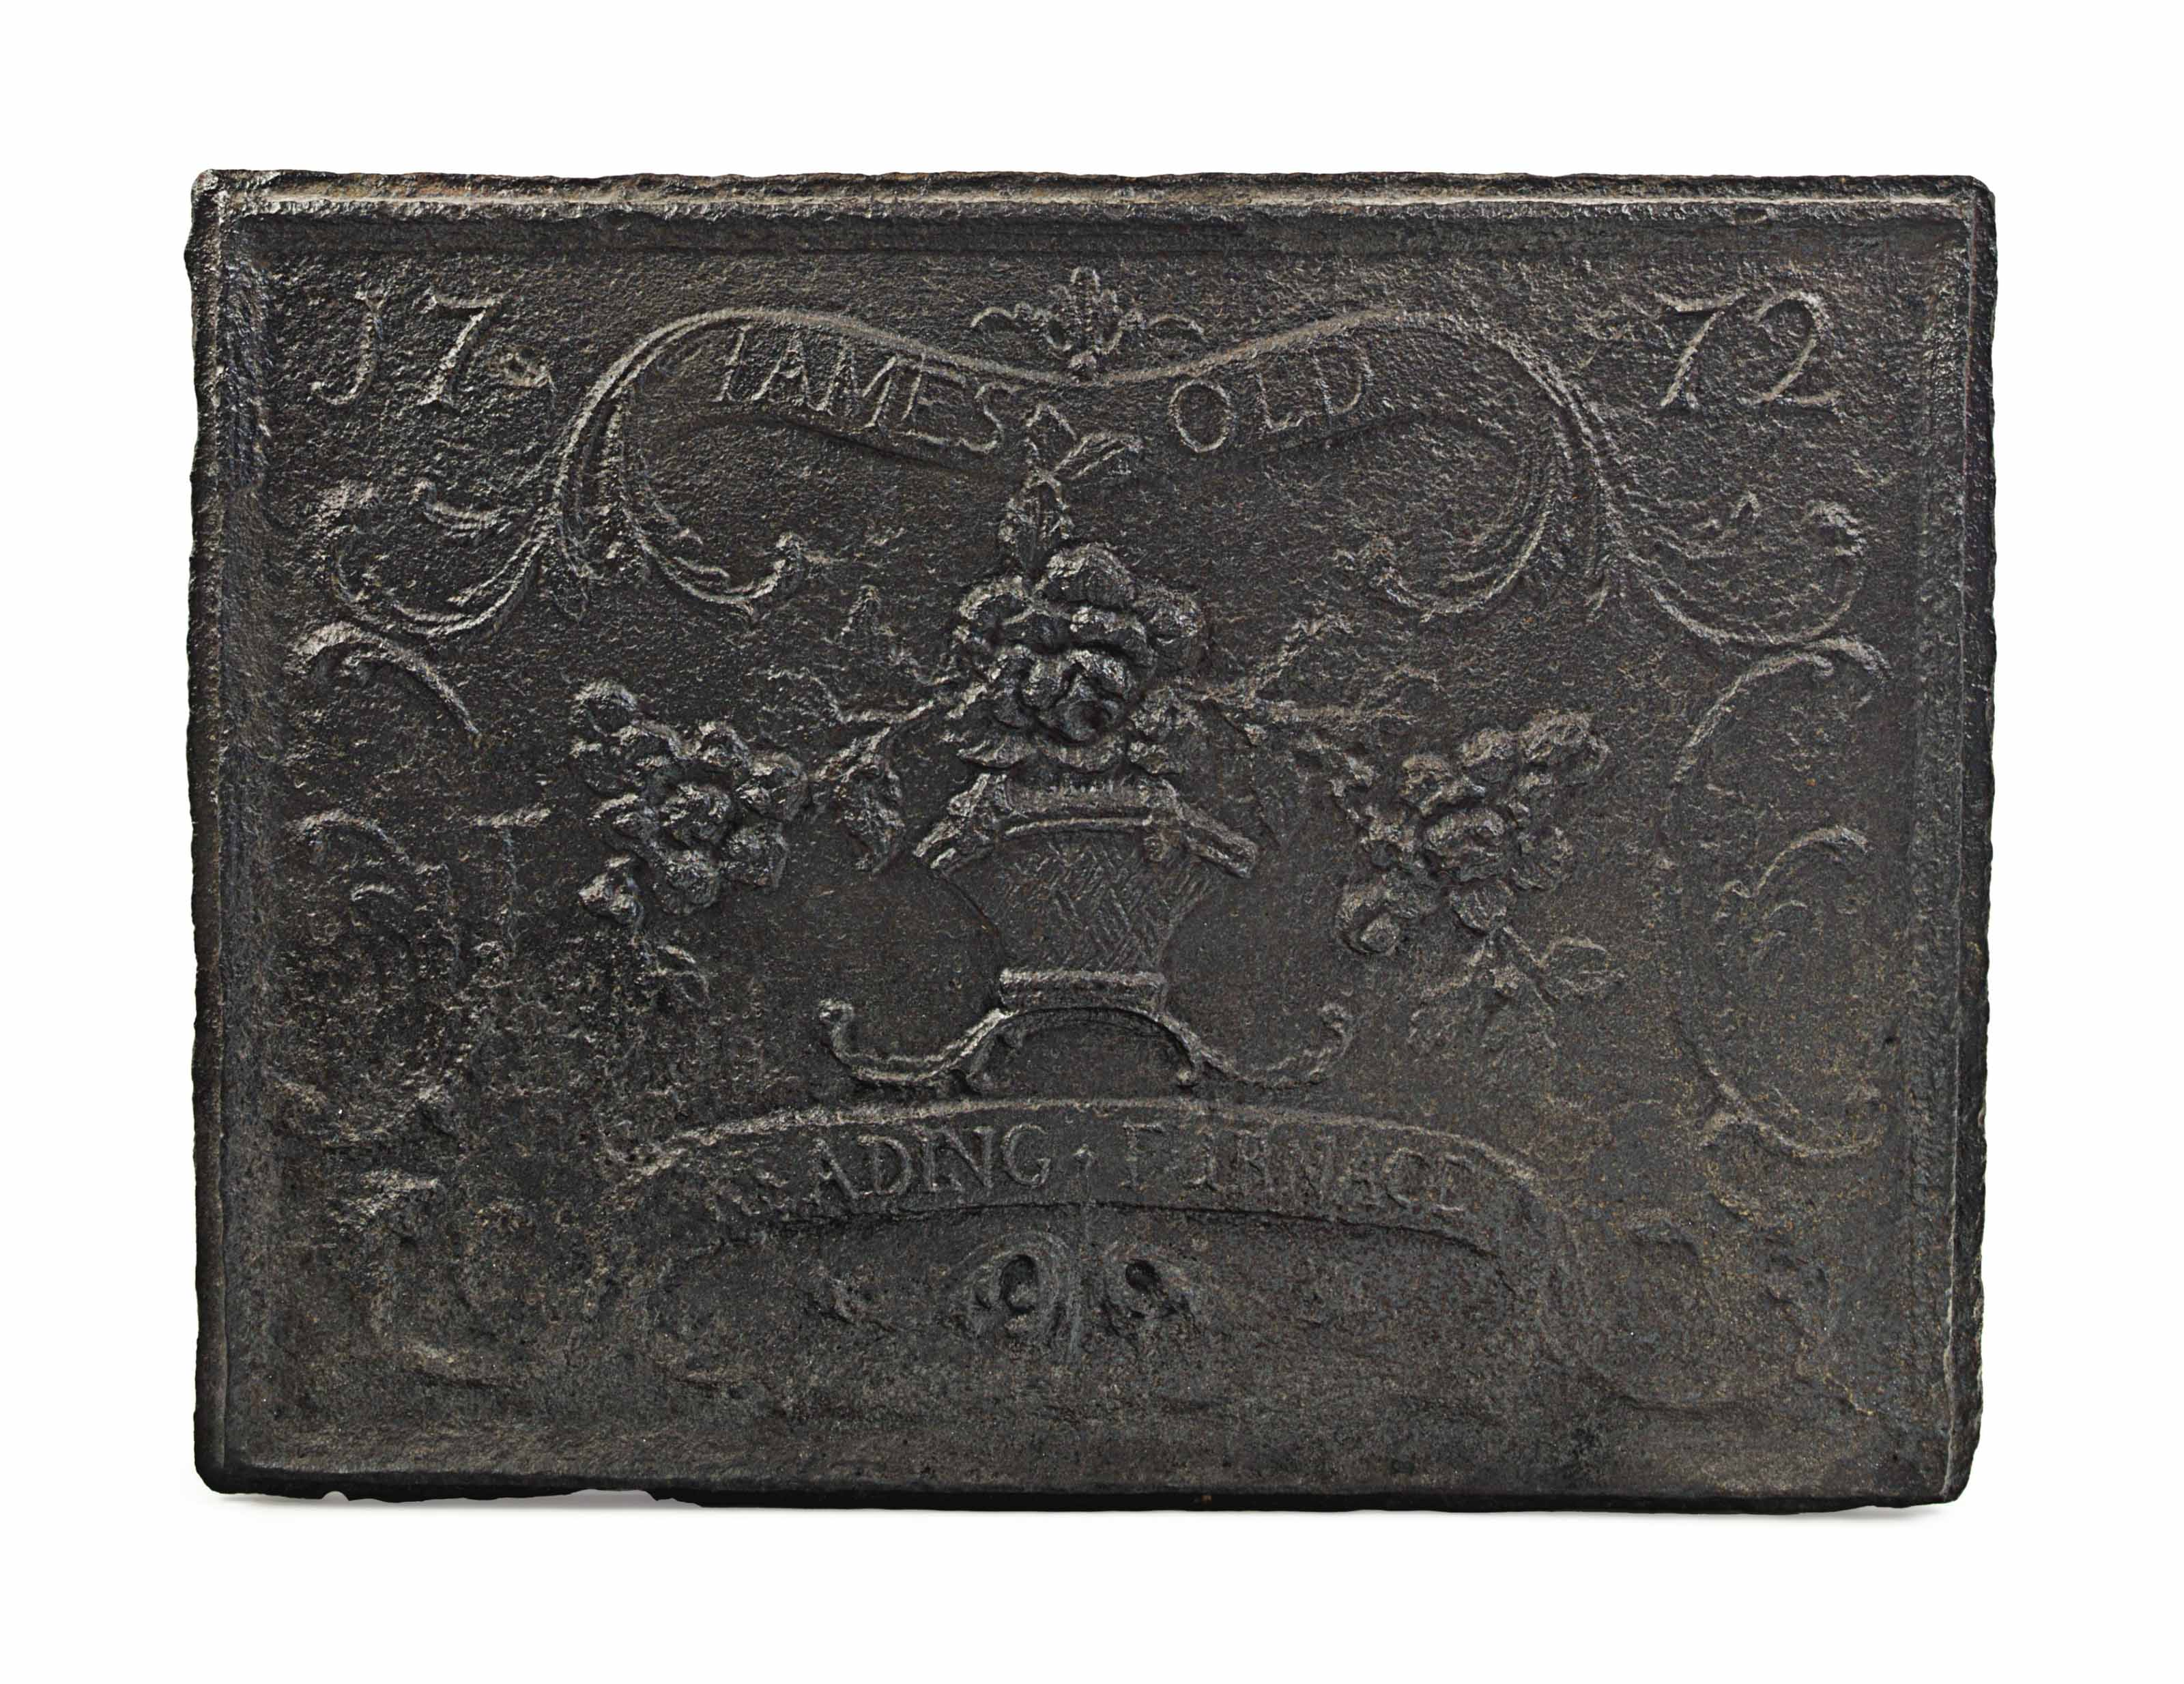 A CAST IRON STOVE PLATE